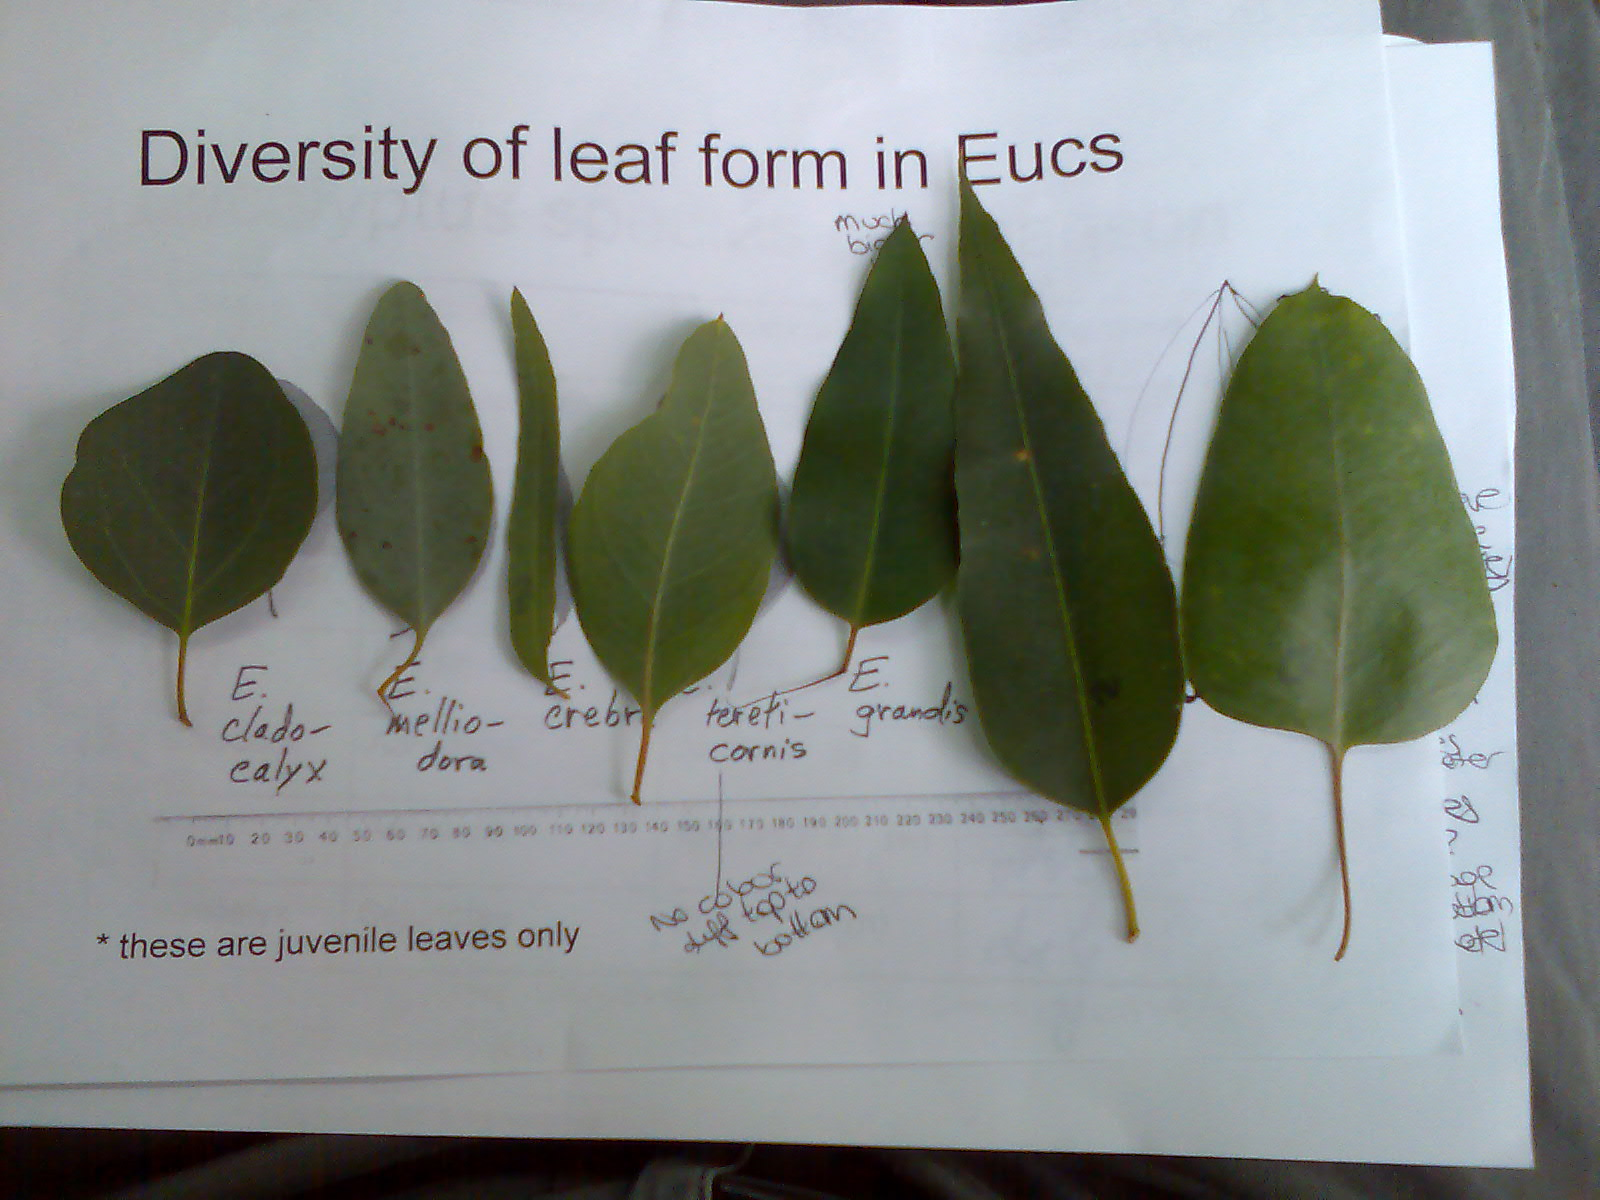 Leaf form in eucalypts